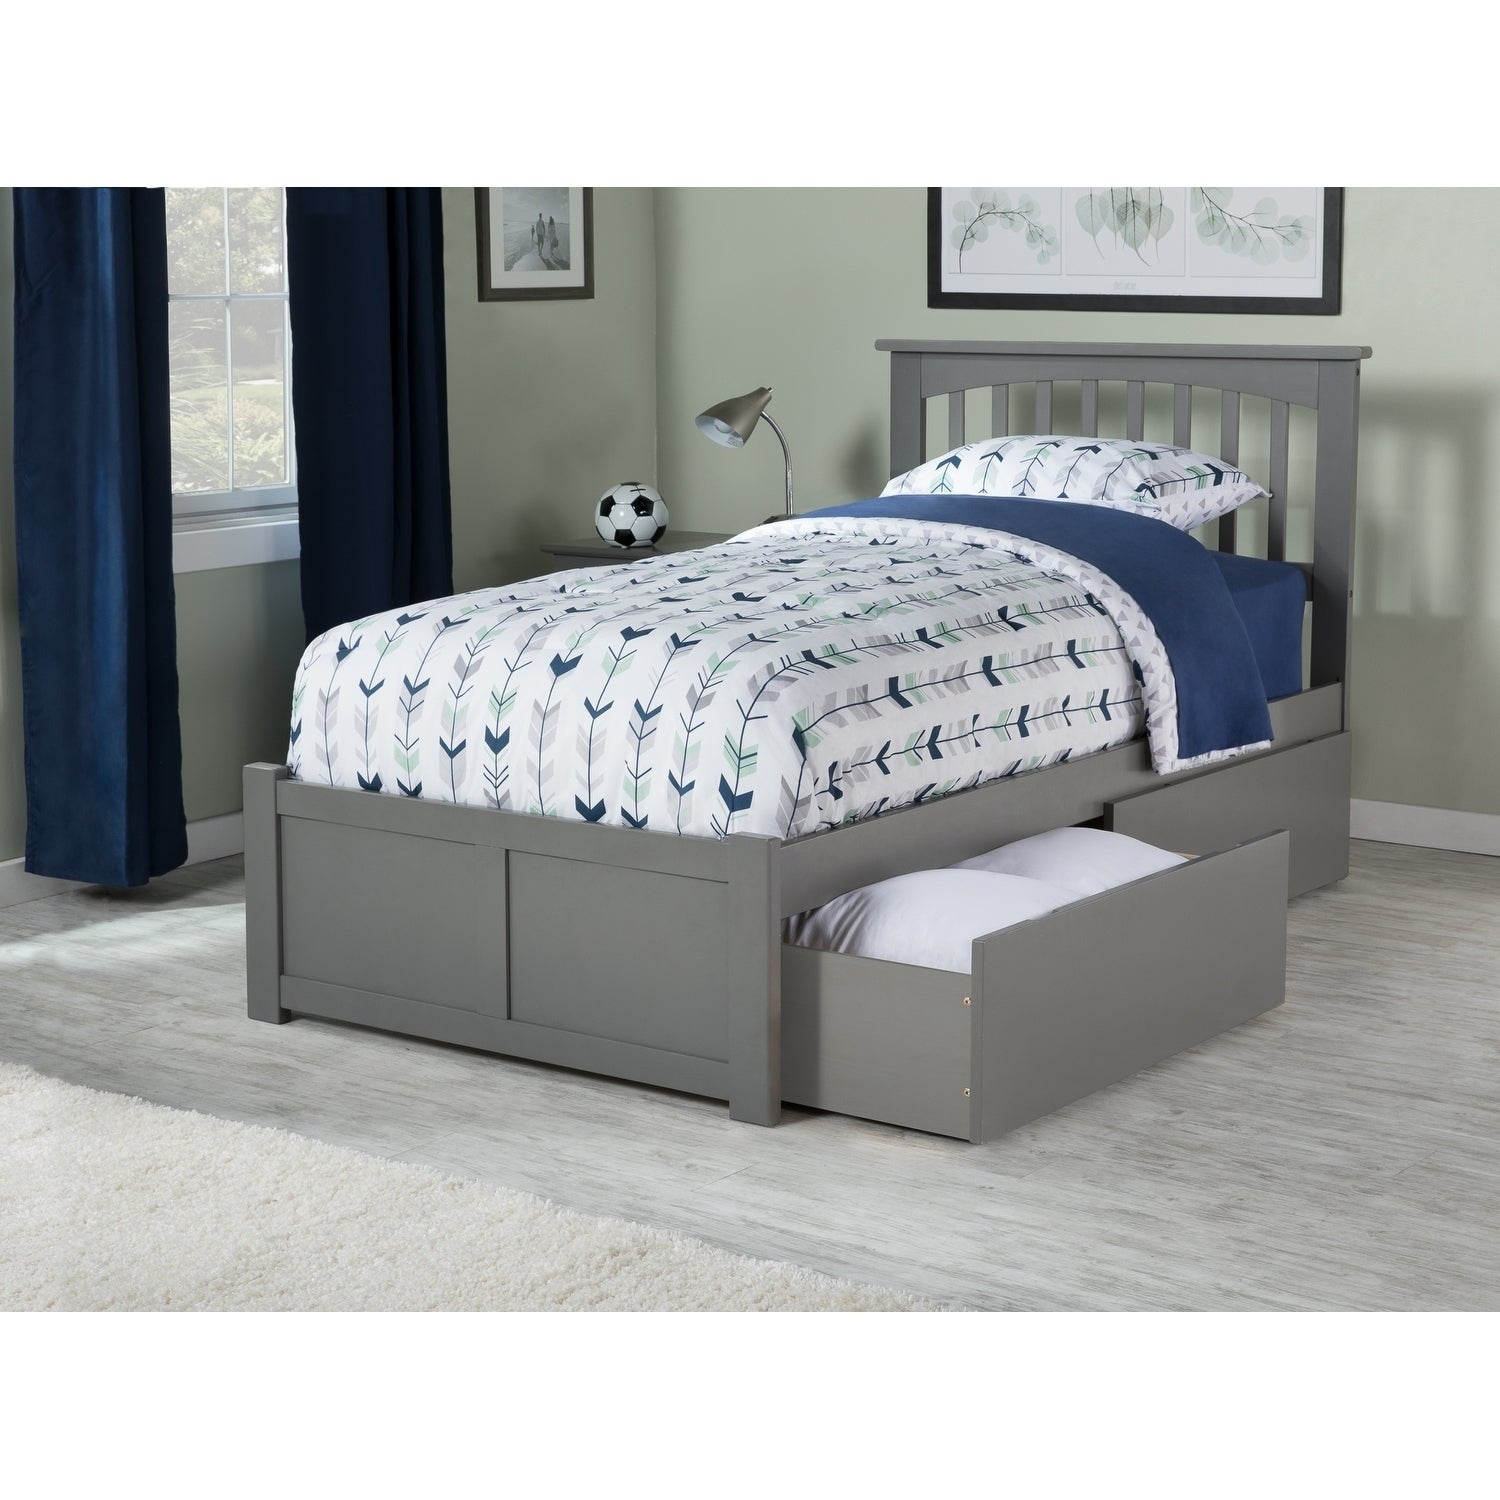 Shop Mission Twin Xl Platform Bed With Flat Panel Foot Board And 2